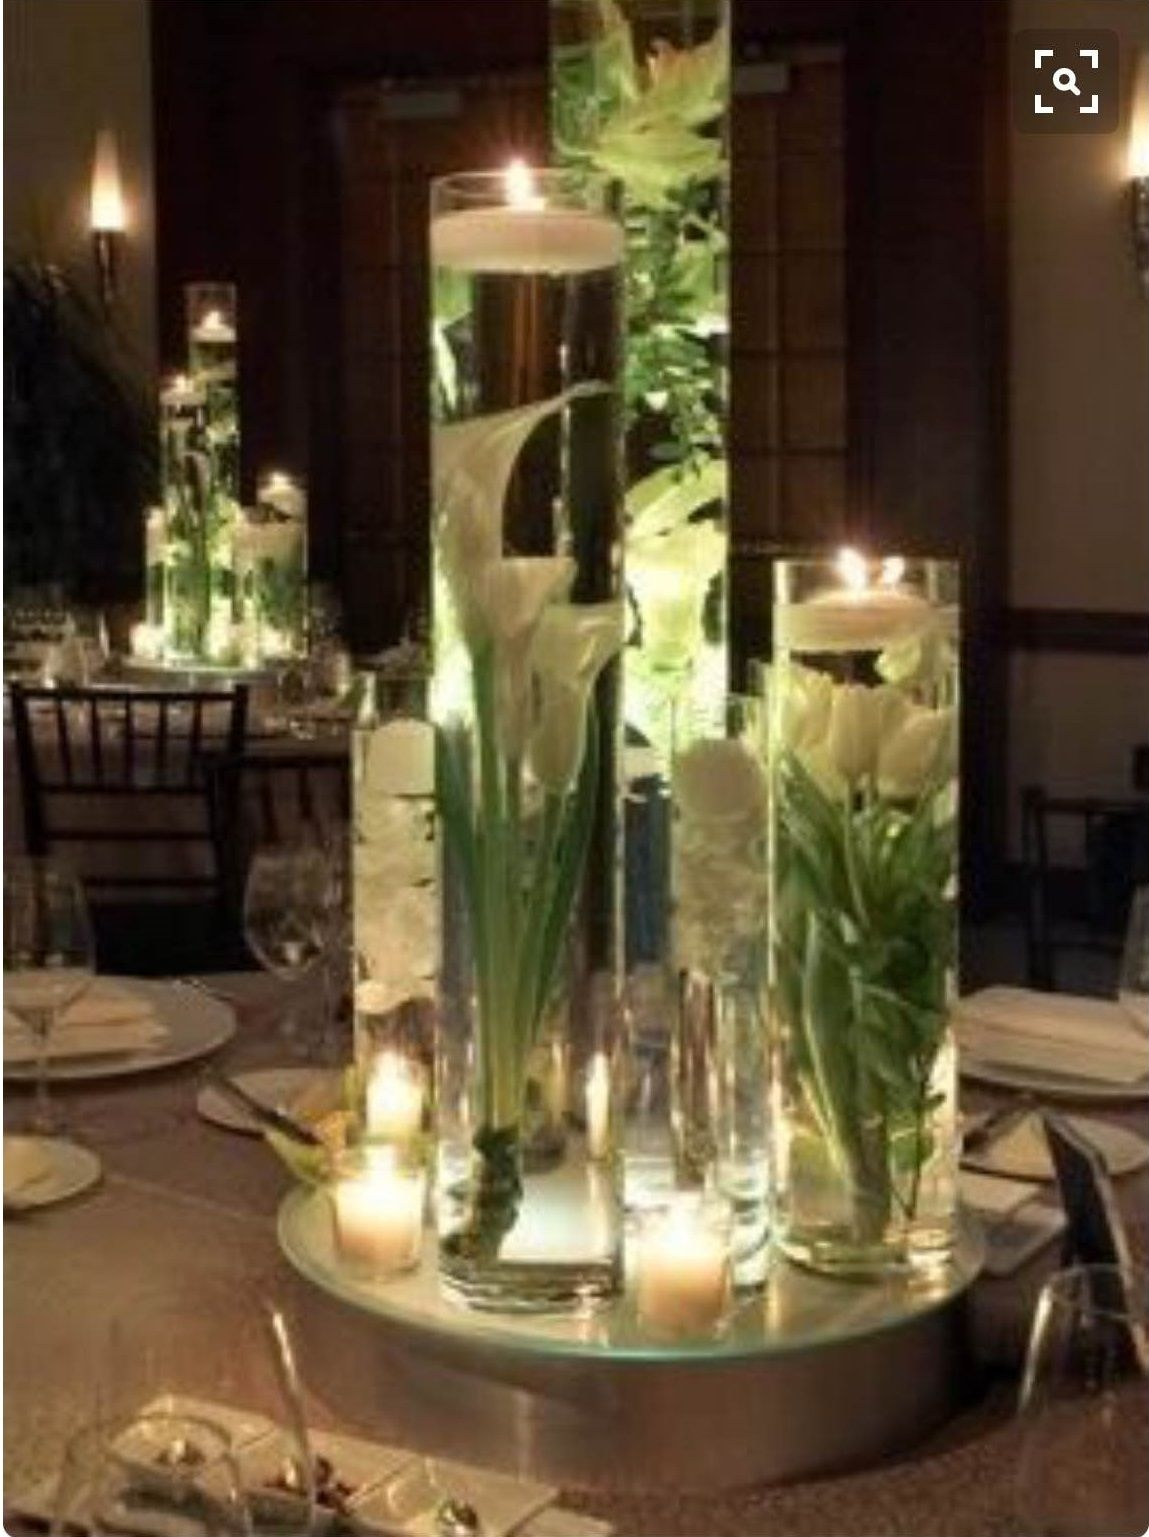 Blue artificial flowers in vase & Artificial Flowers In Vase - Ideas on Foter